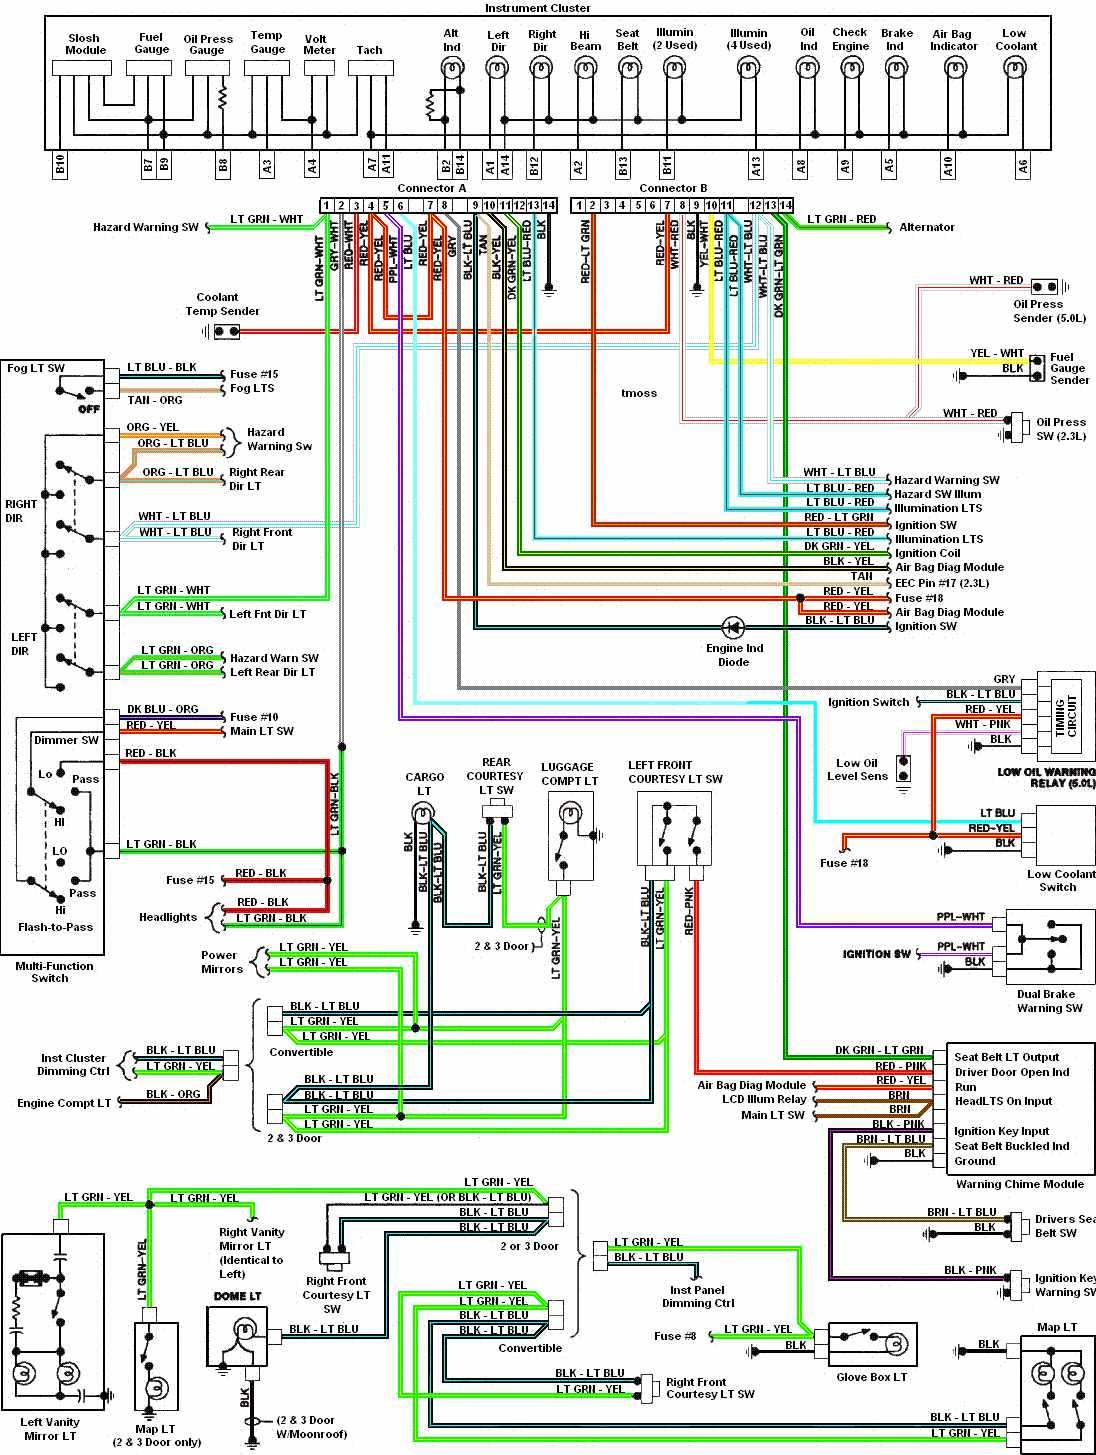 Brilliant 1969 Mustang Dash Wiring Diagram Wiring Diagram Renstra Mohammedshrine Wiring Digital Resources Renstramohammedshrineorg